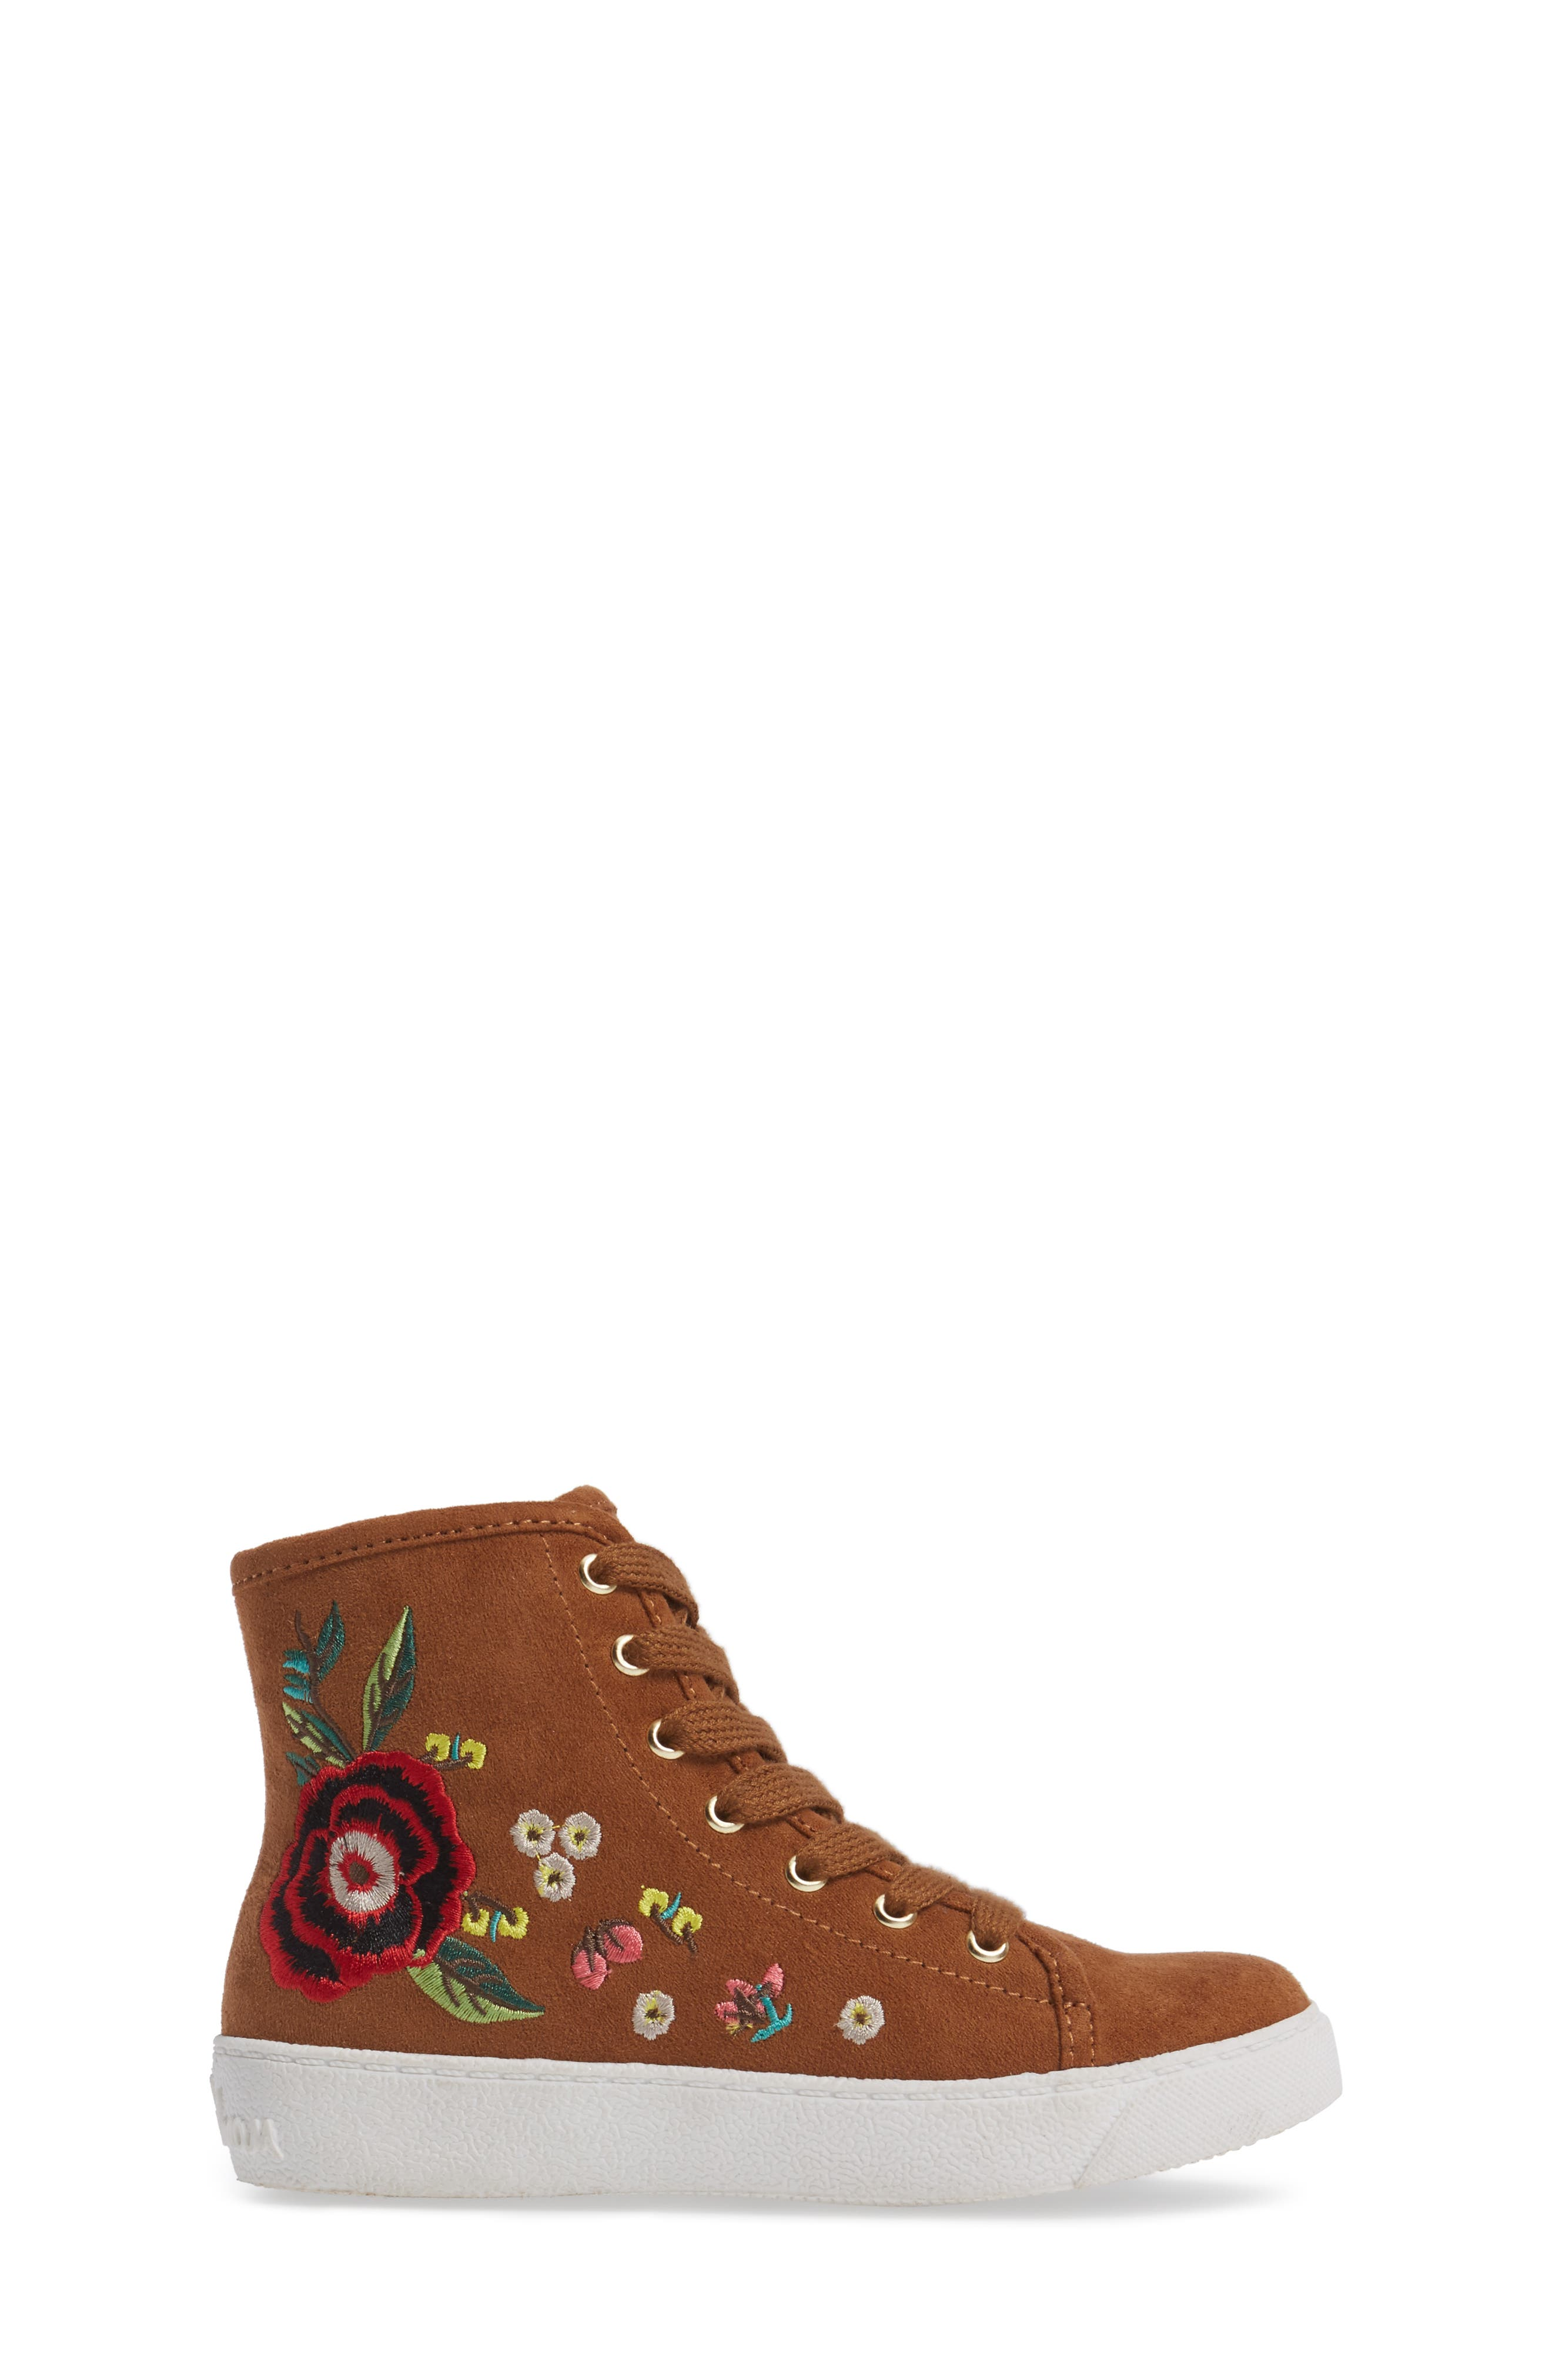 Harriet Embroidered High Top Sneaker,                             Alternate thumbnail 3, color,                             Saddle Faux Leather